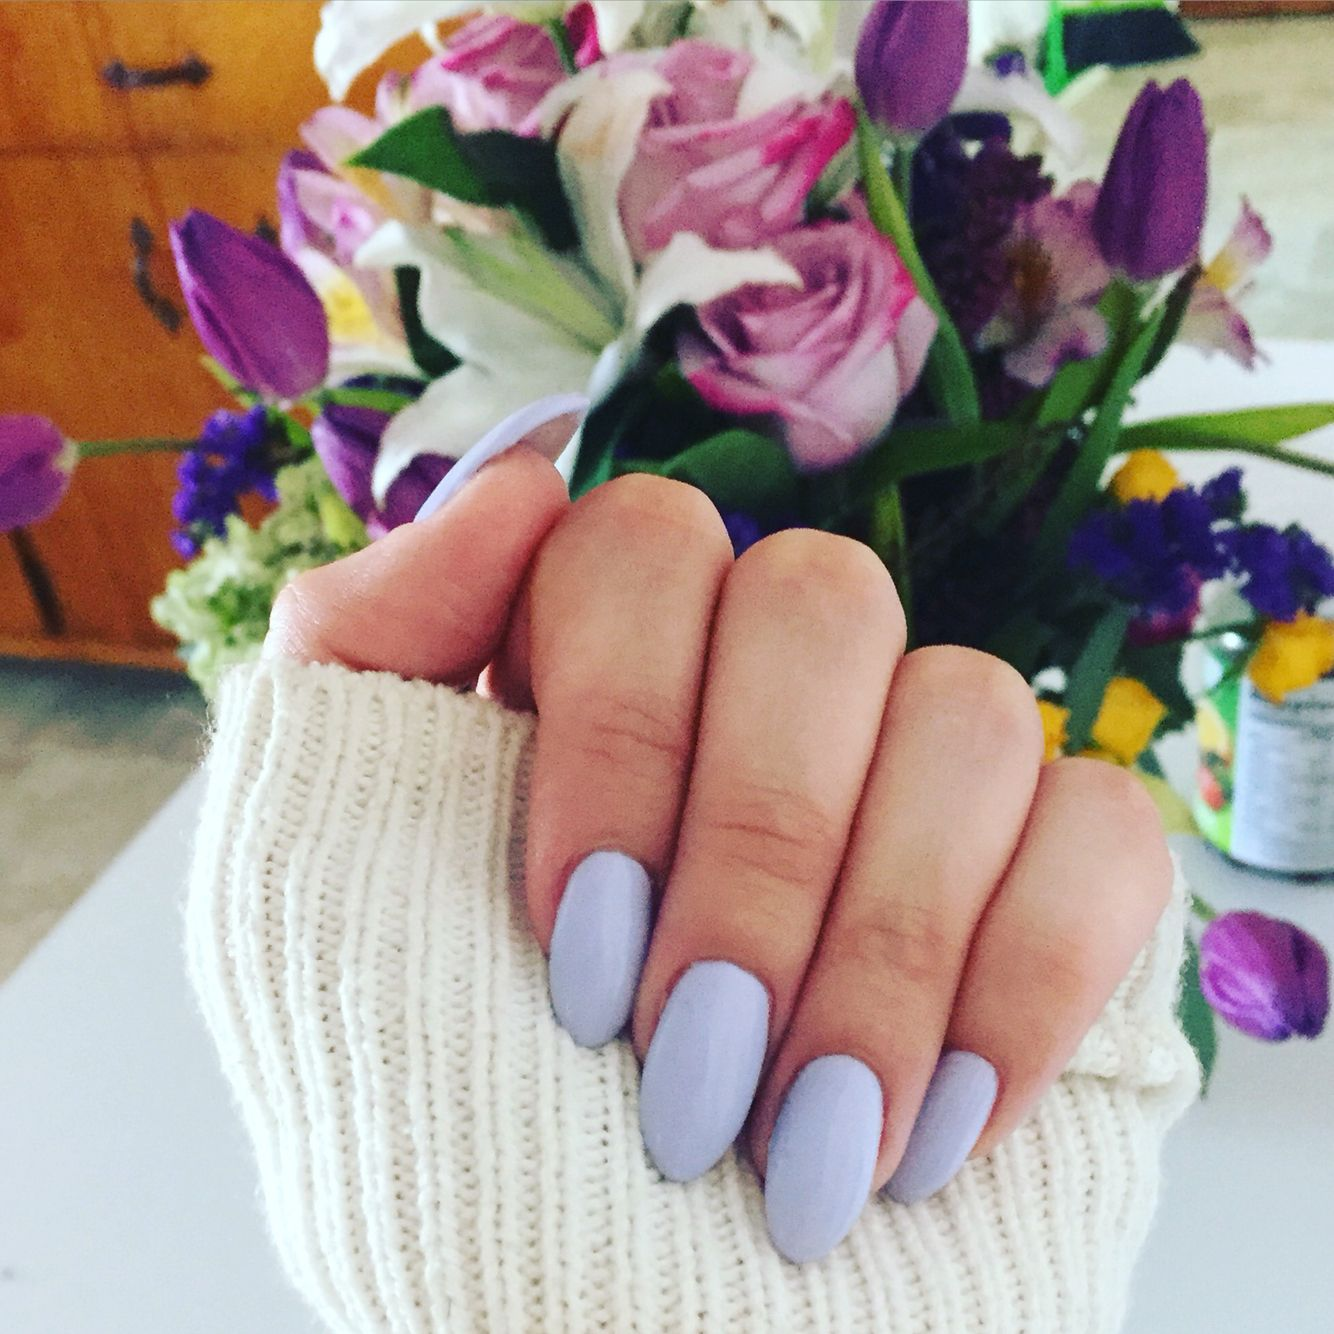 Perrywinkle nails for spring